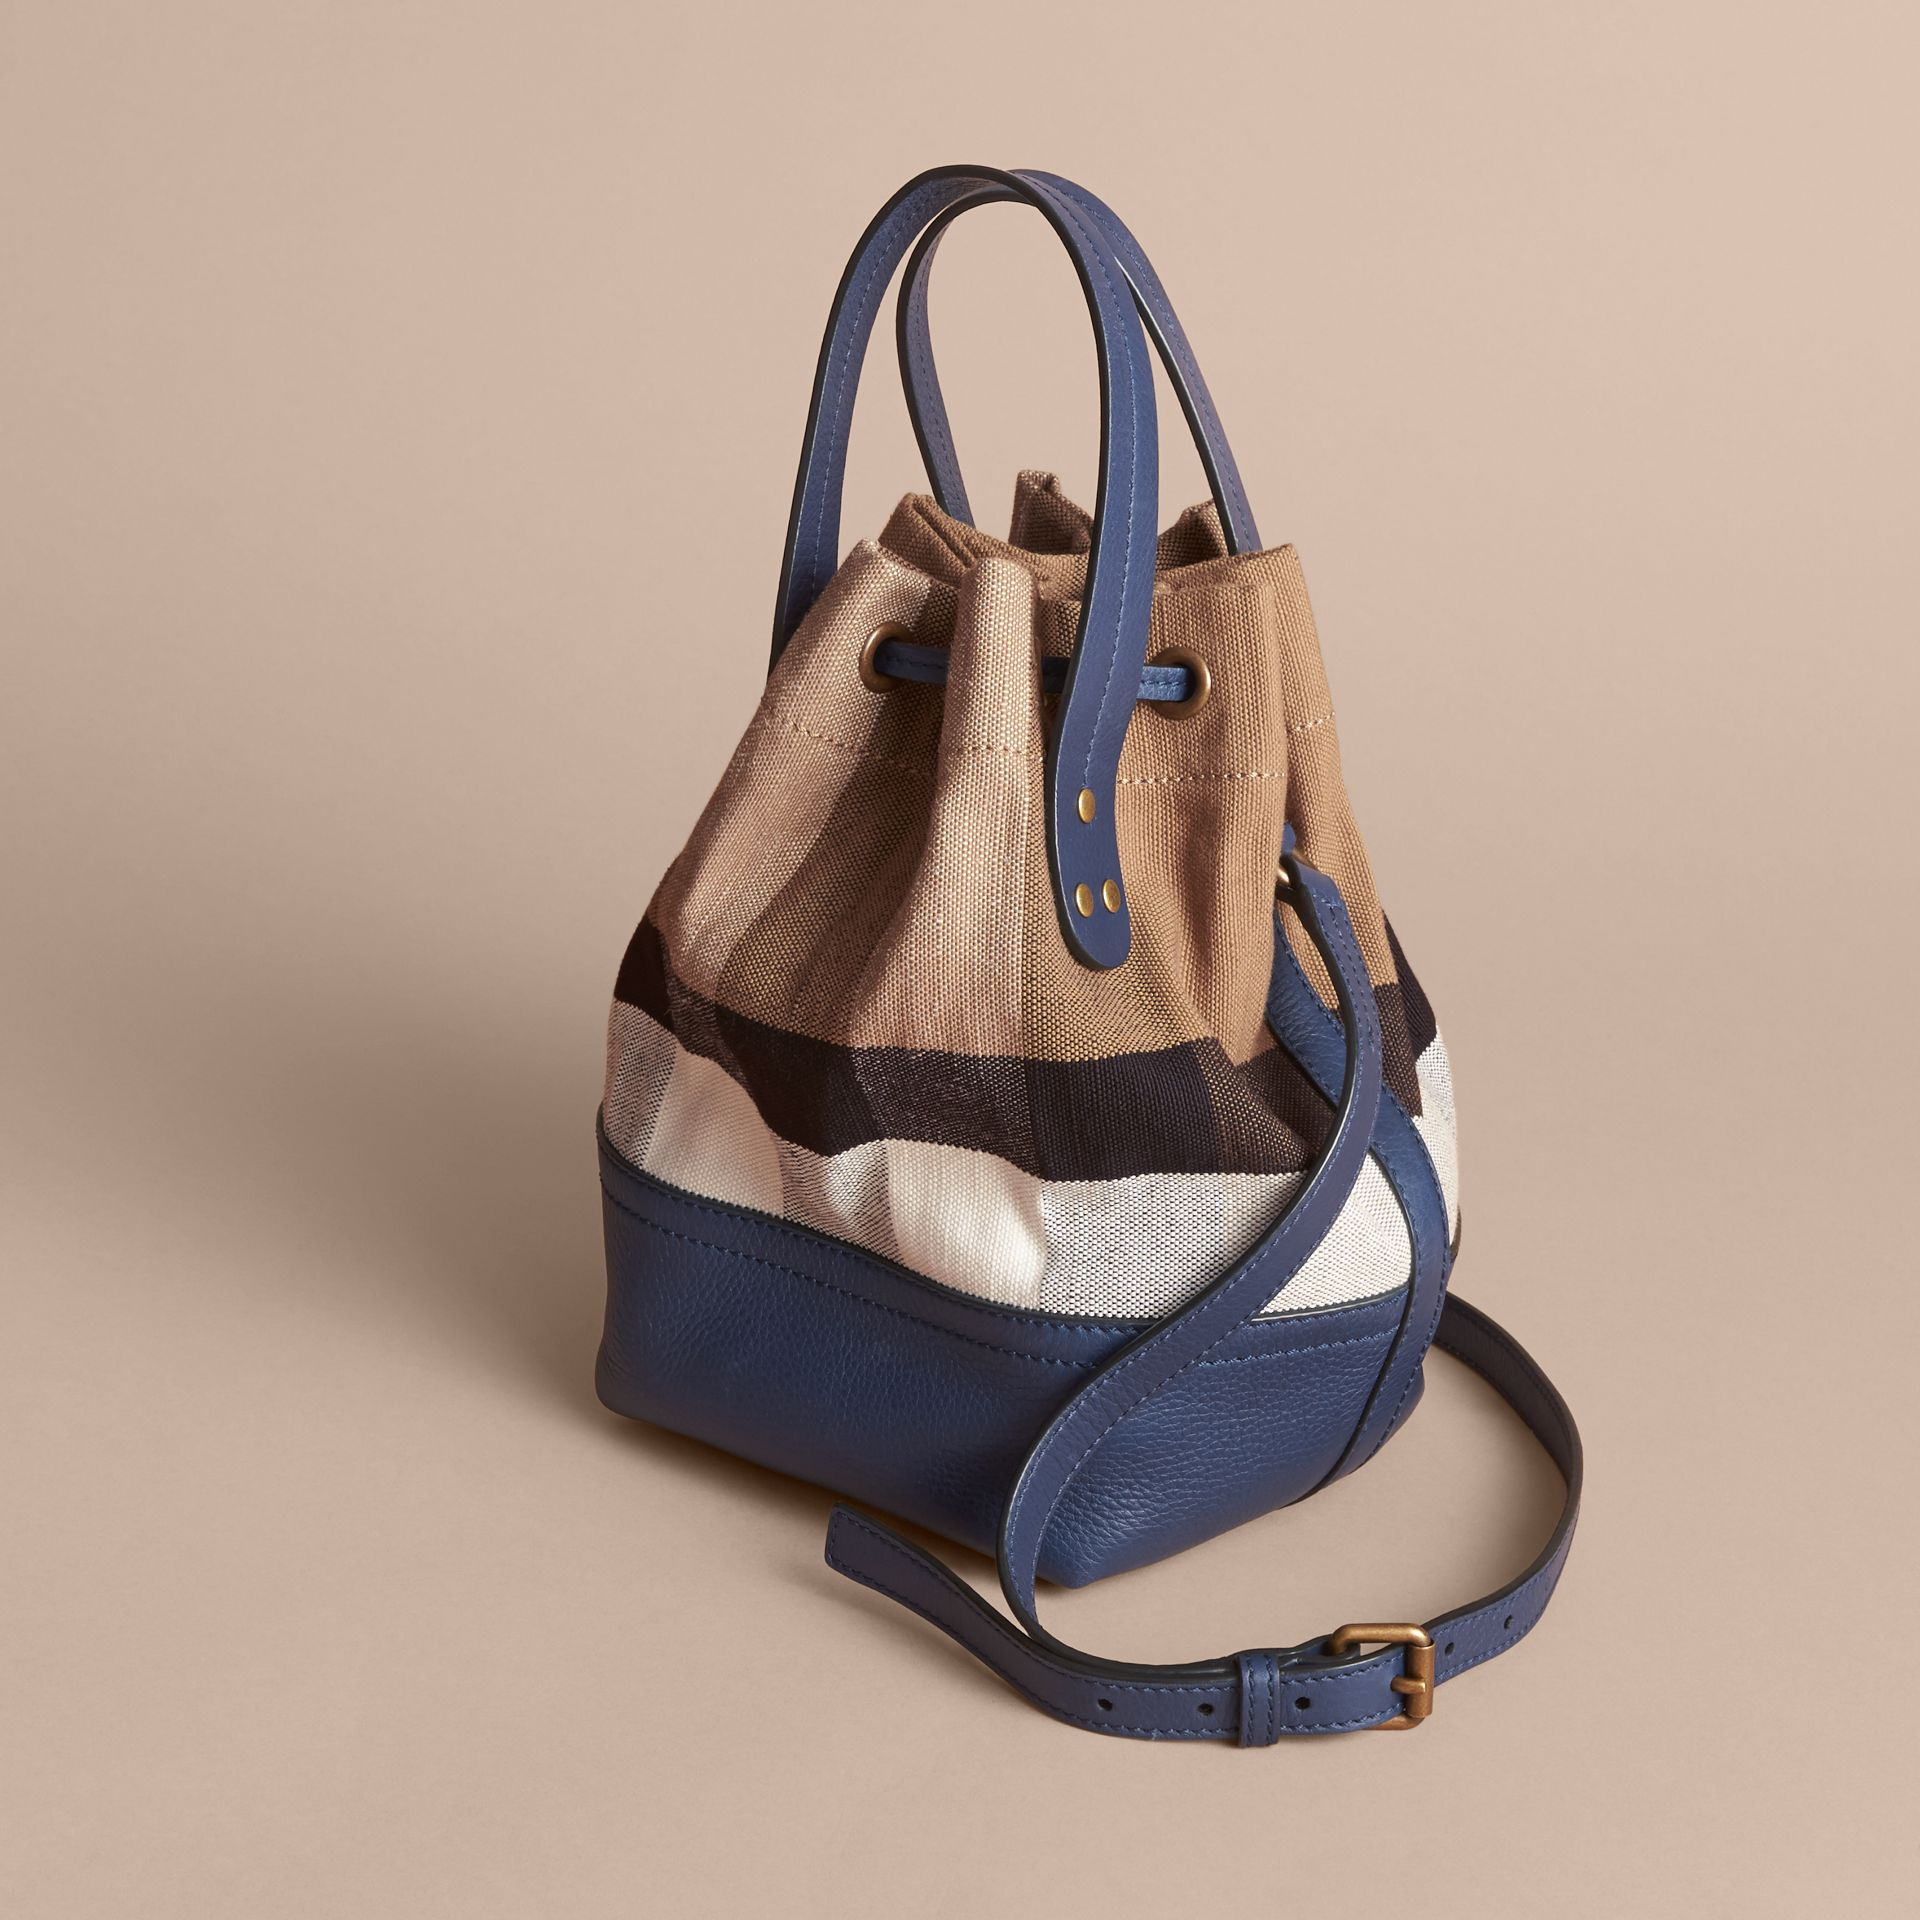 Small Canvas Check and Leather Bucket Bag in Brilliant Navy - Women | Burberry United States - gallery image 5